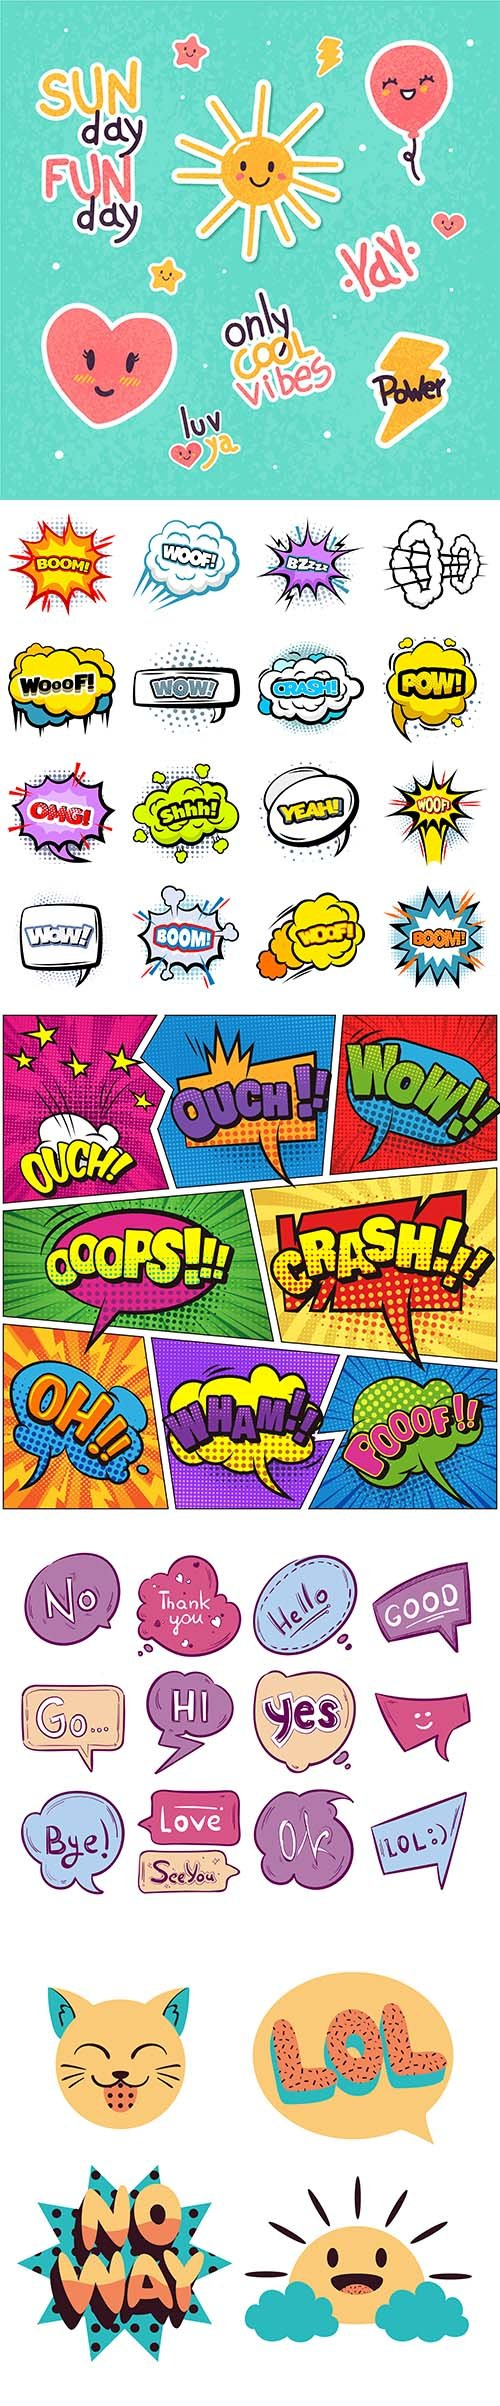 Speech bubbles hand-drawn coloring Vol 2